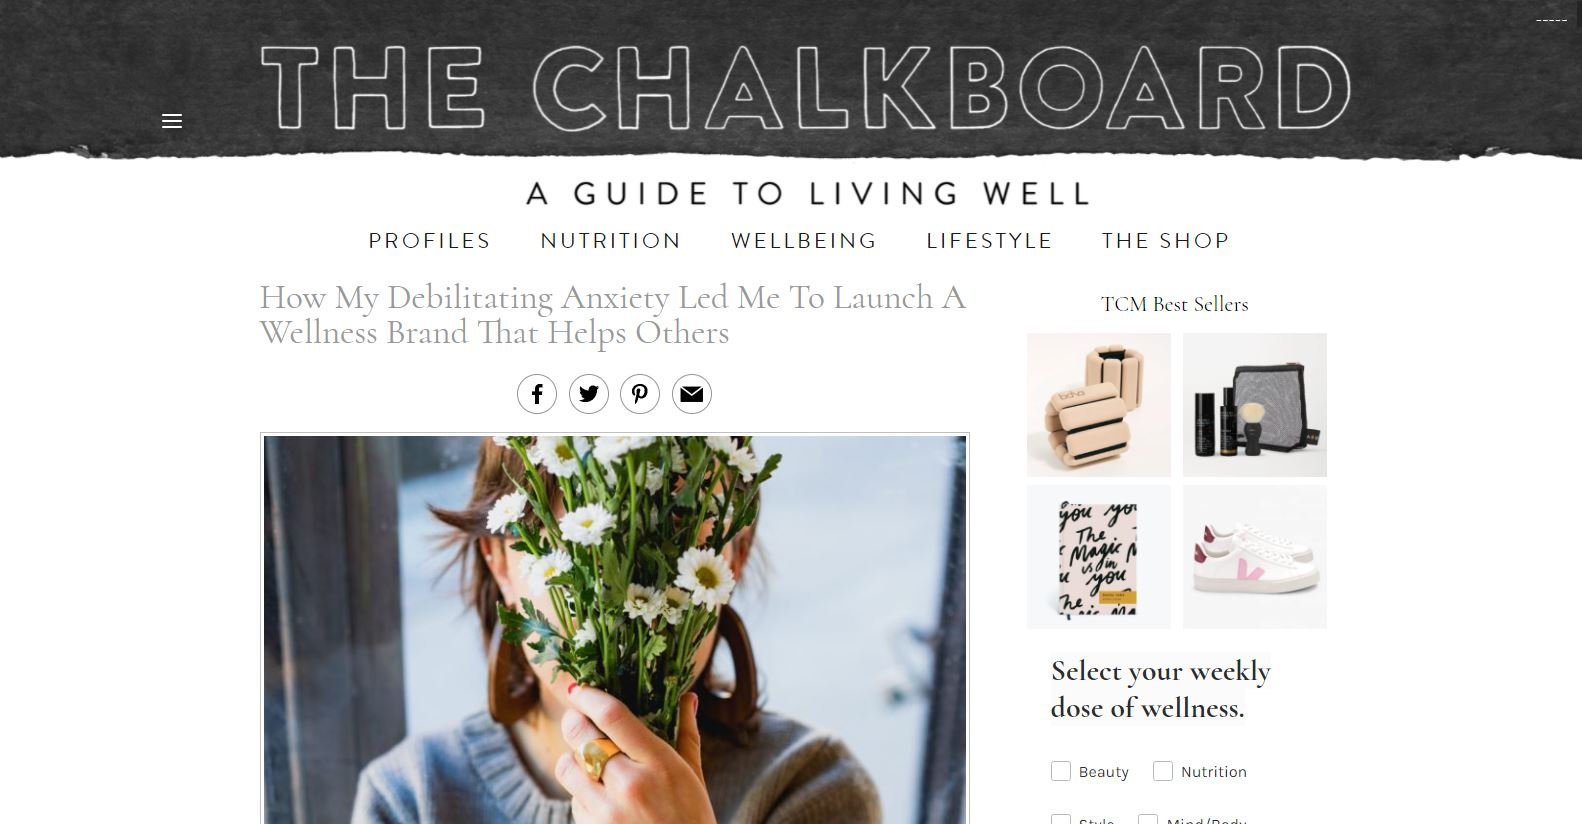 How my debilitating anxiety led me to launch a wellness brand that helps others